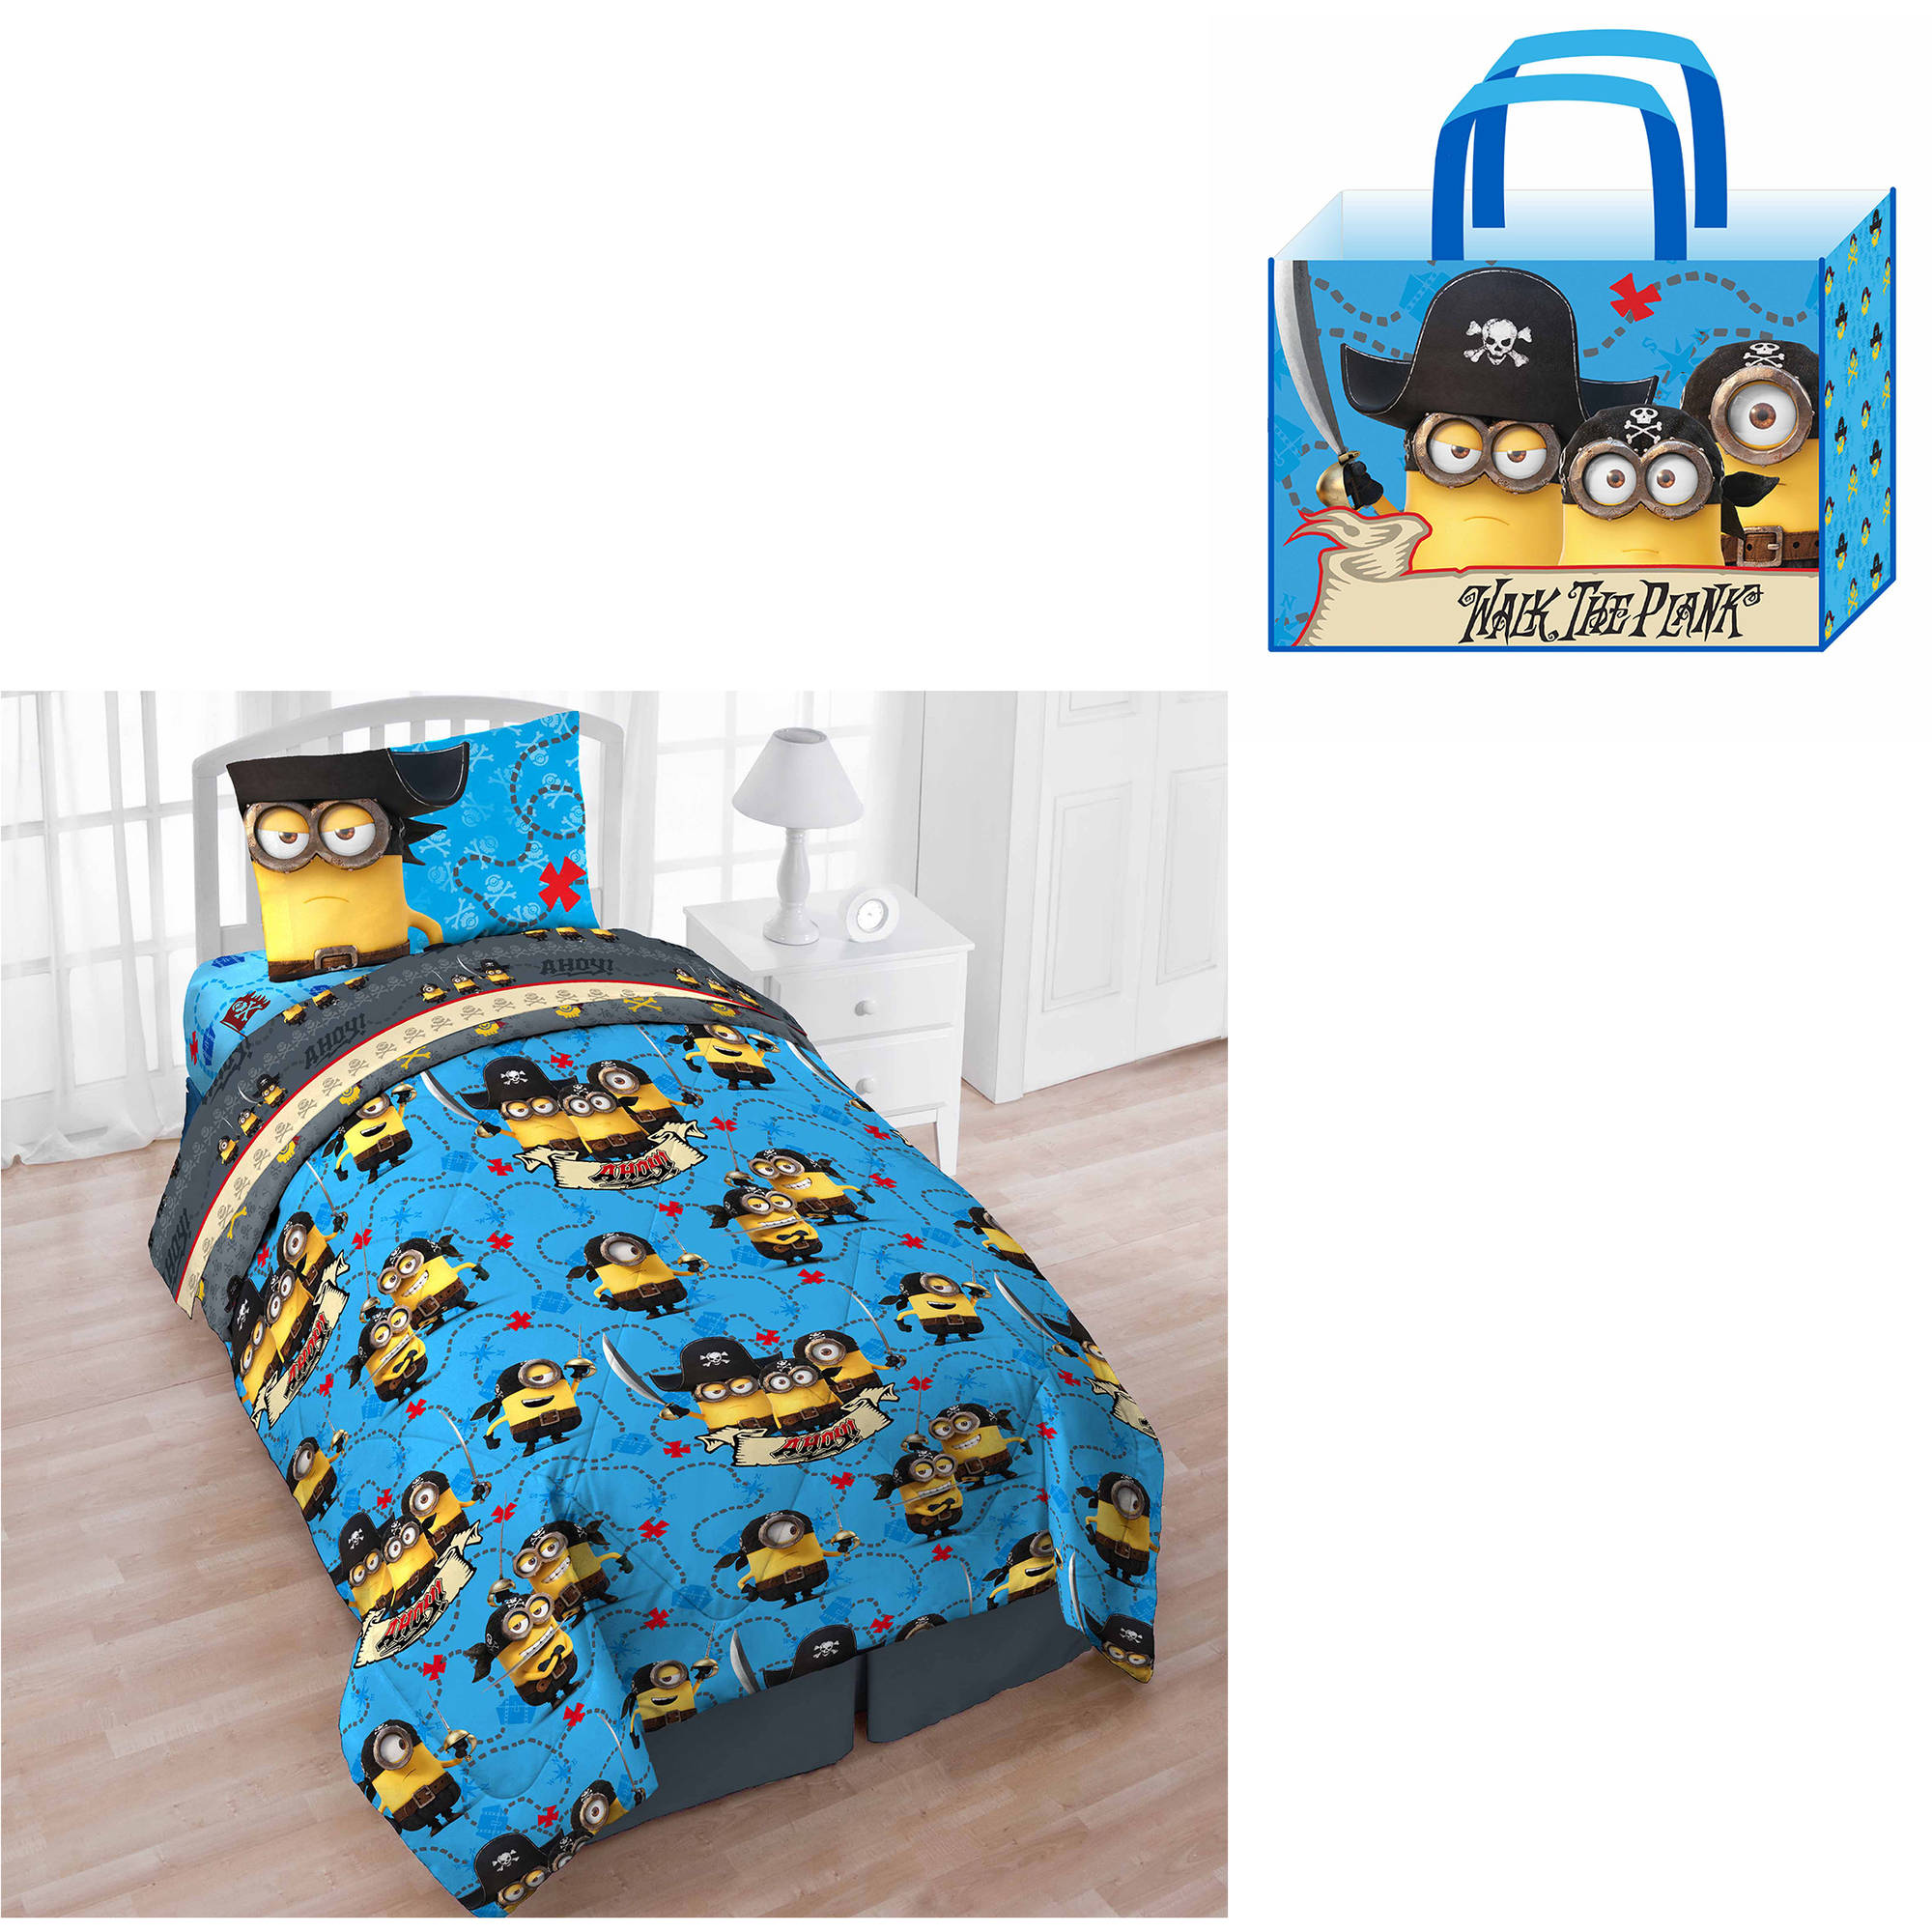 Universal's Despicable Me Minions Treasure Cove Twin 4-Piece Bed in a Bag with Bonus Tote